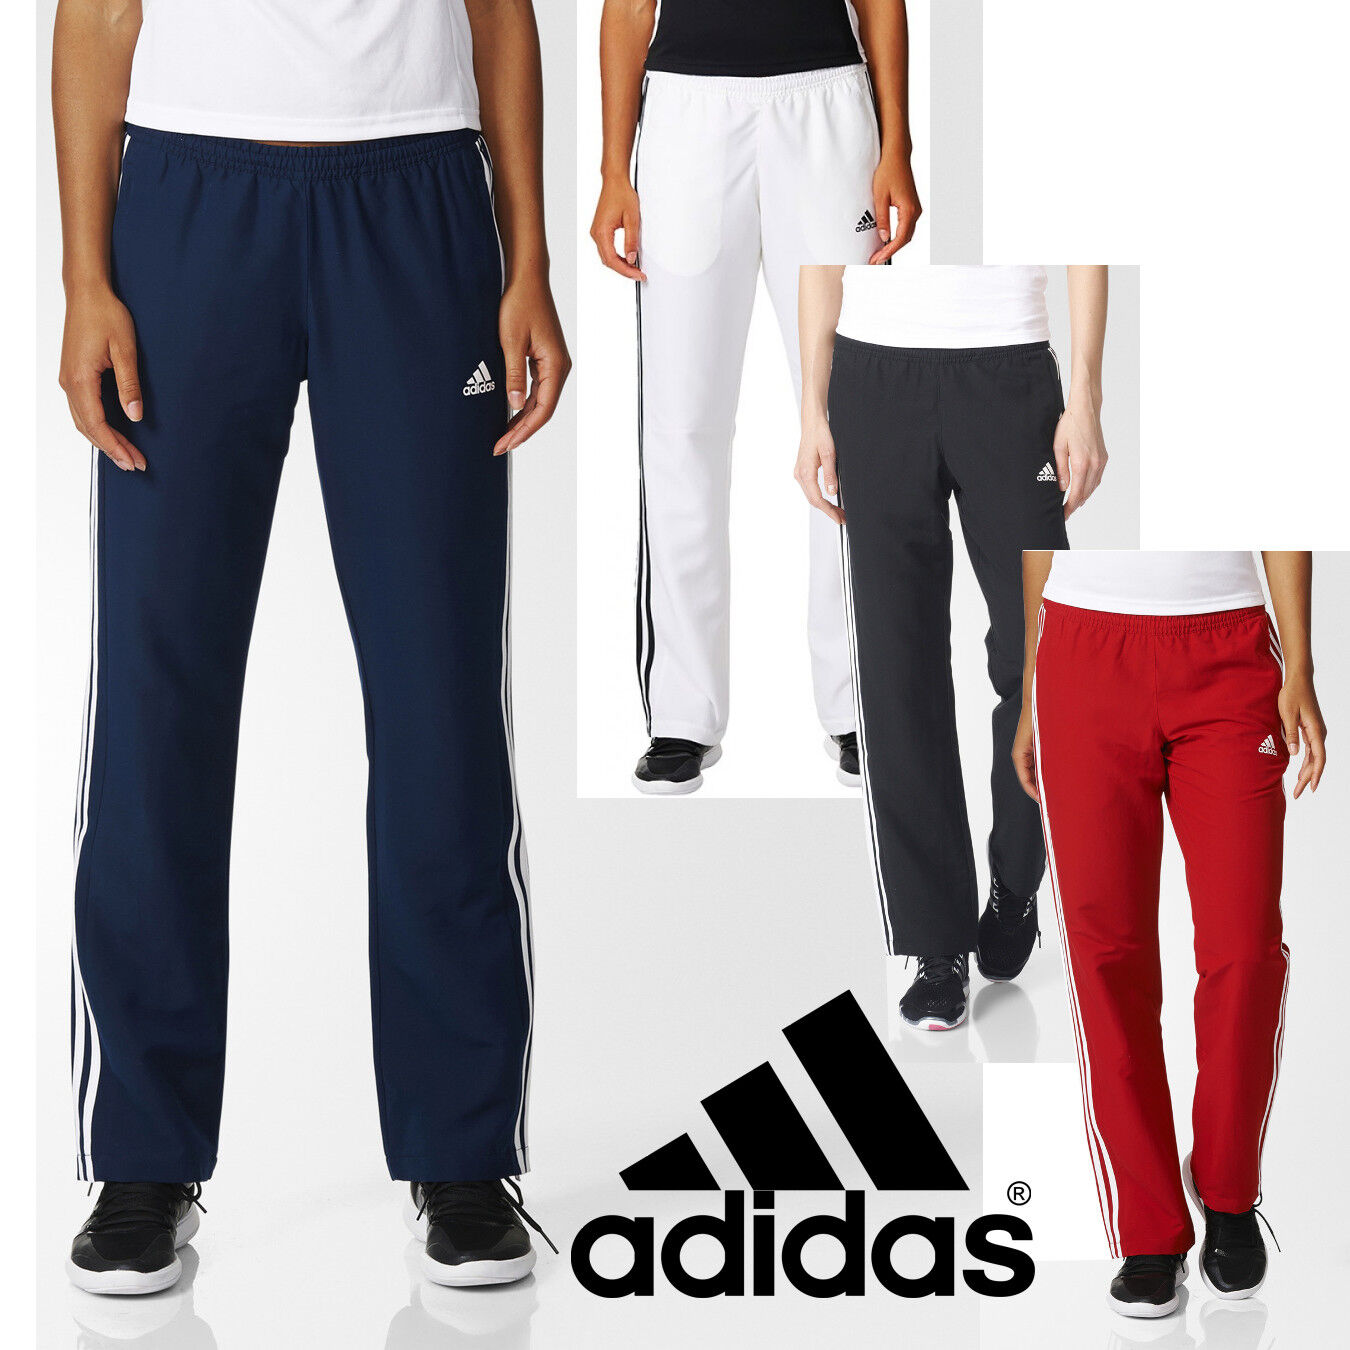 35a63fe8435 Details about adidas Team T16 Women's Tracksuit Trousers Running Gym Sports  Track Pants - SALE